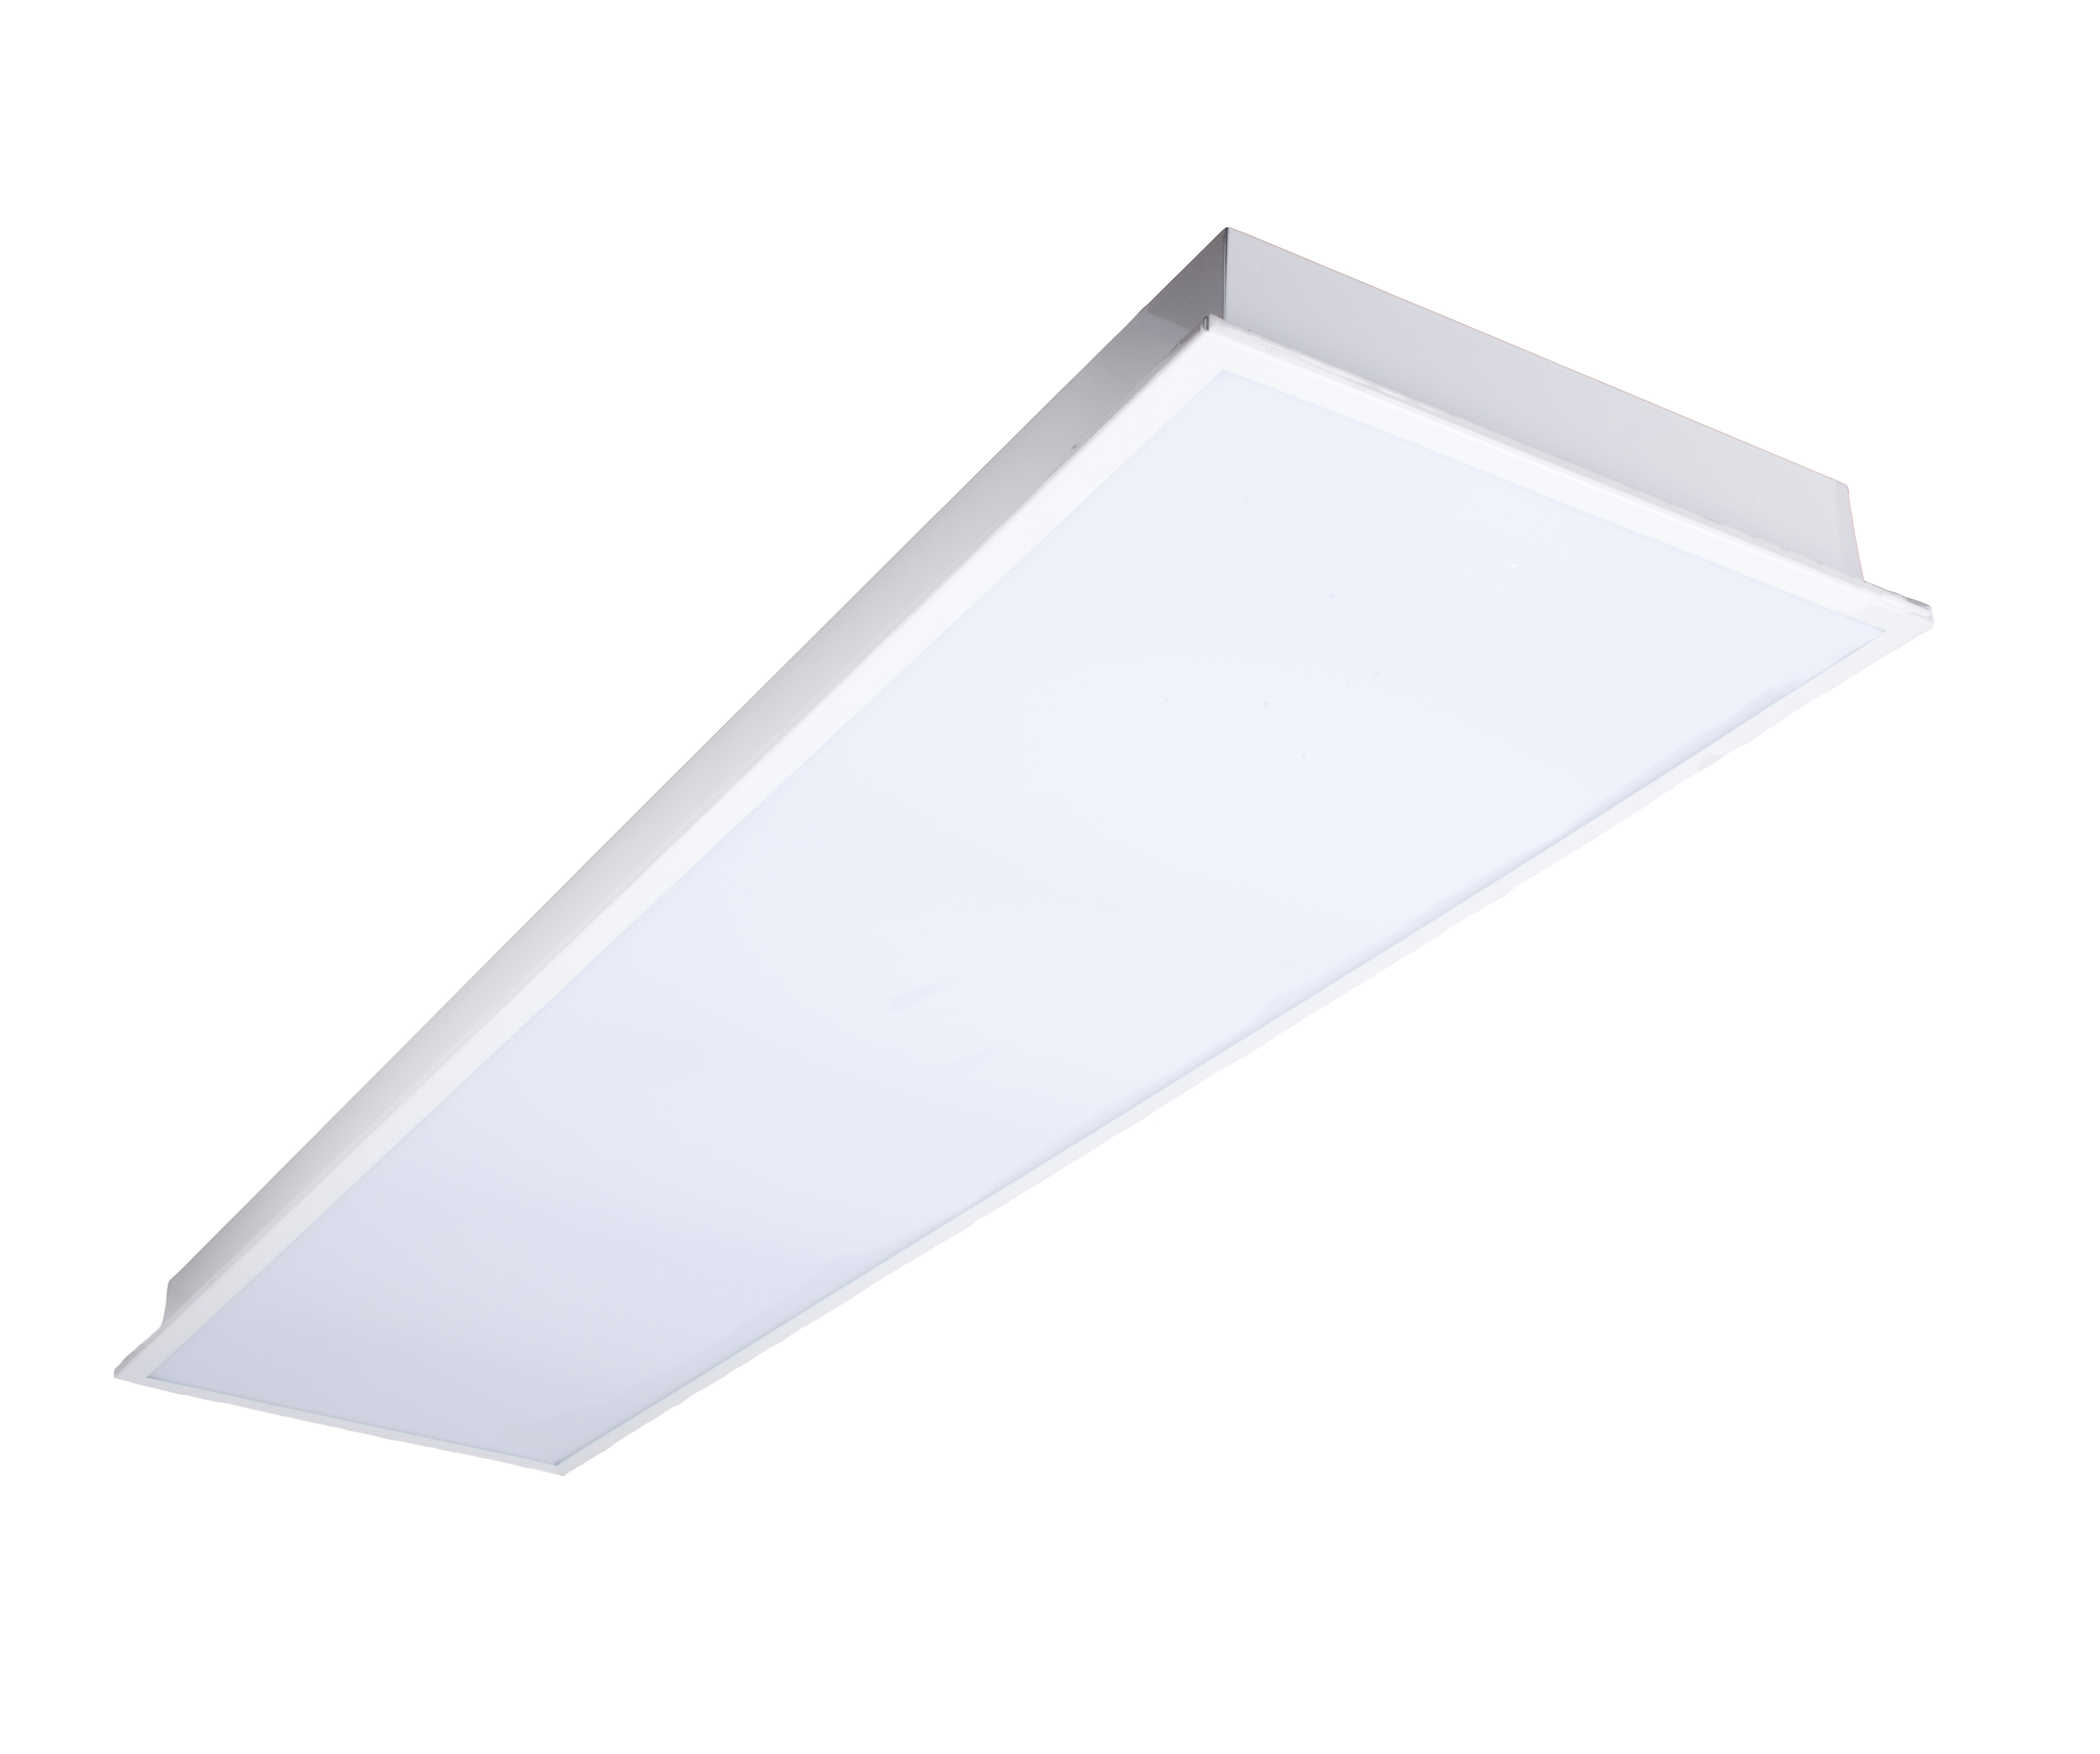 14PNL35/850/LED 80909 LED FLAT PANEL 1x4 35W 5000K DIMMABLE ProLED